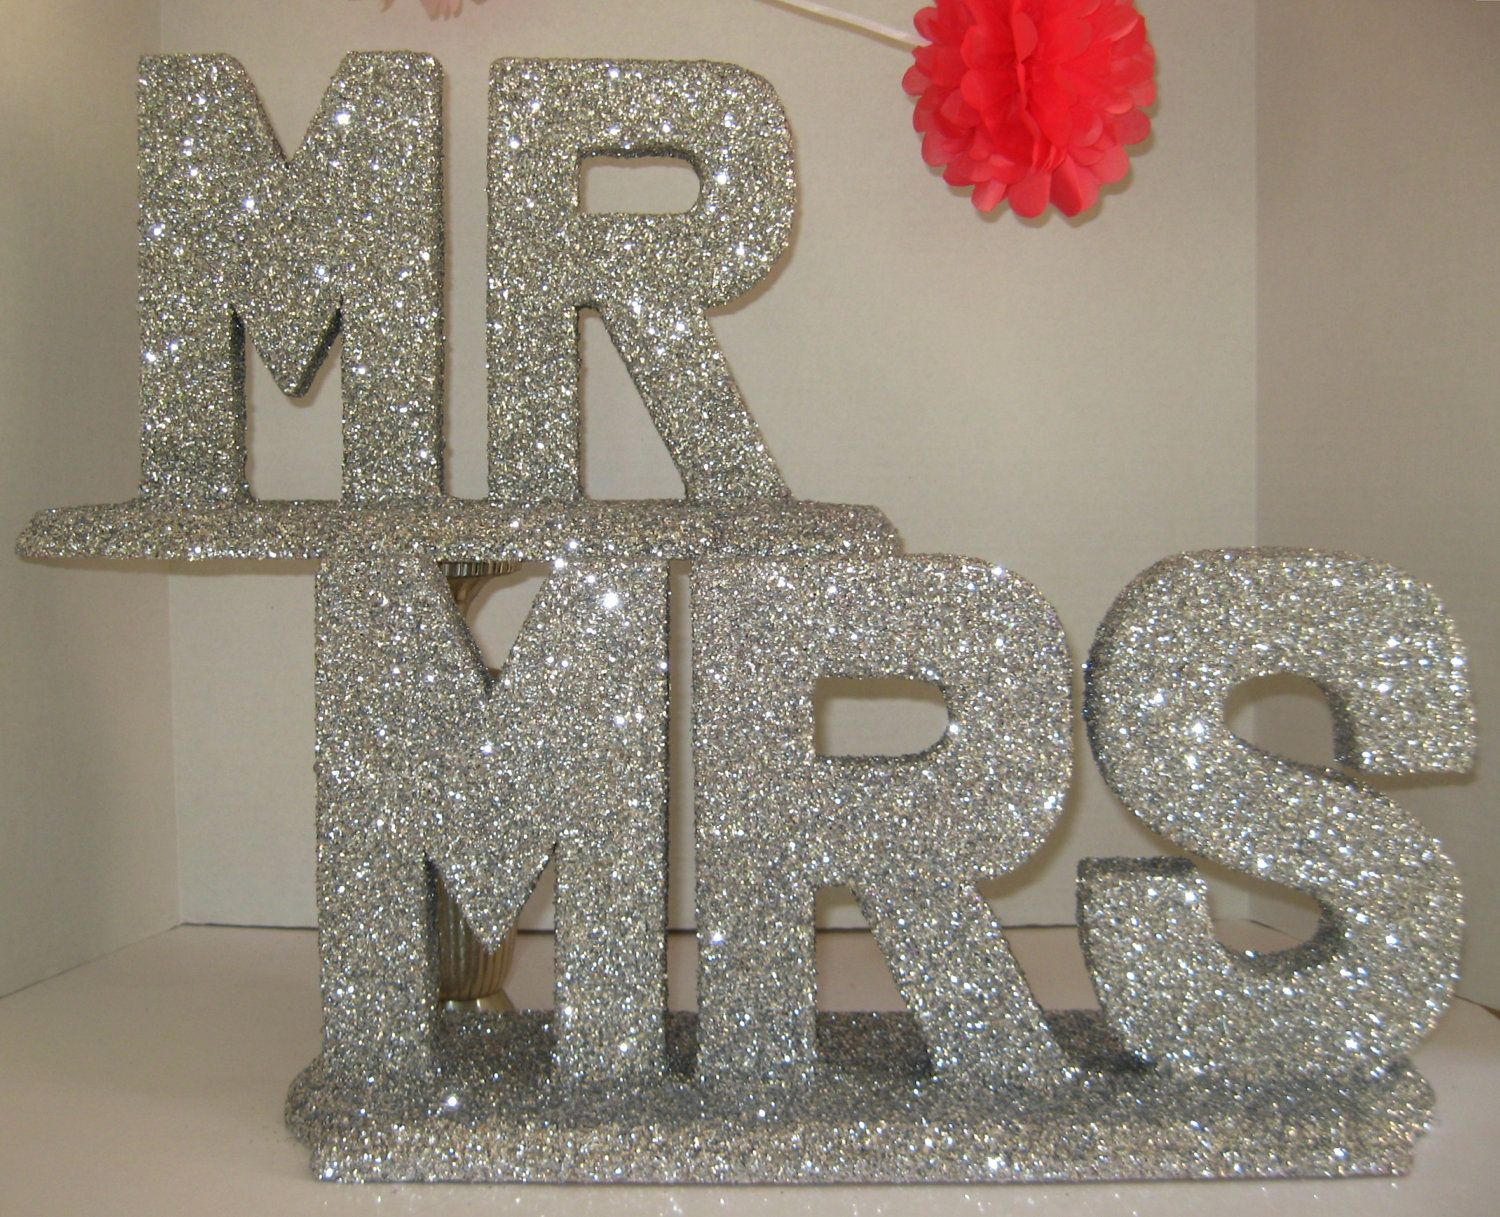 MR MRS XOXO I Do We Do Black Tie Decor Spring Bride Groom Wedding Party Table Wedding Reception Custom. $74.50, via Etsy.